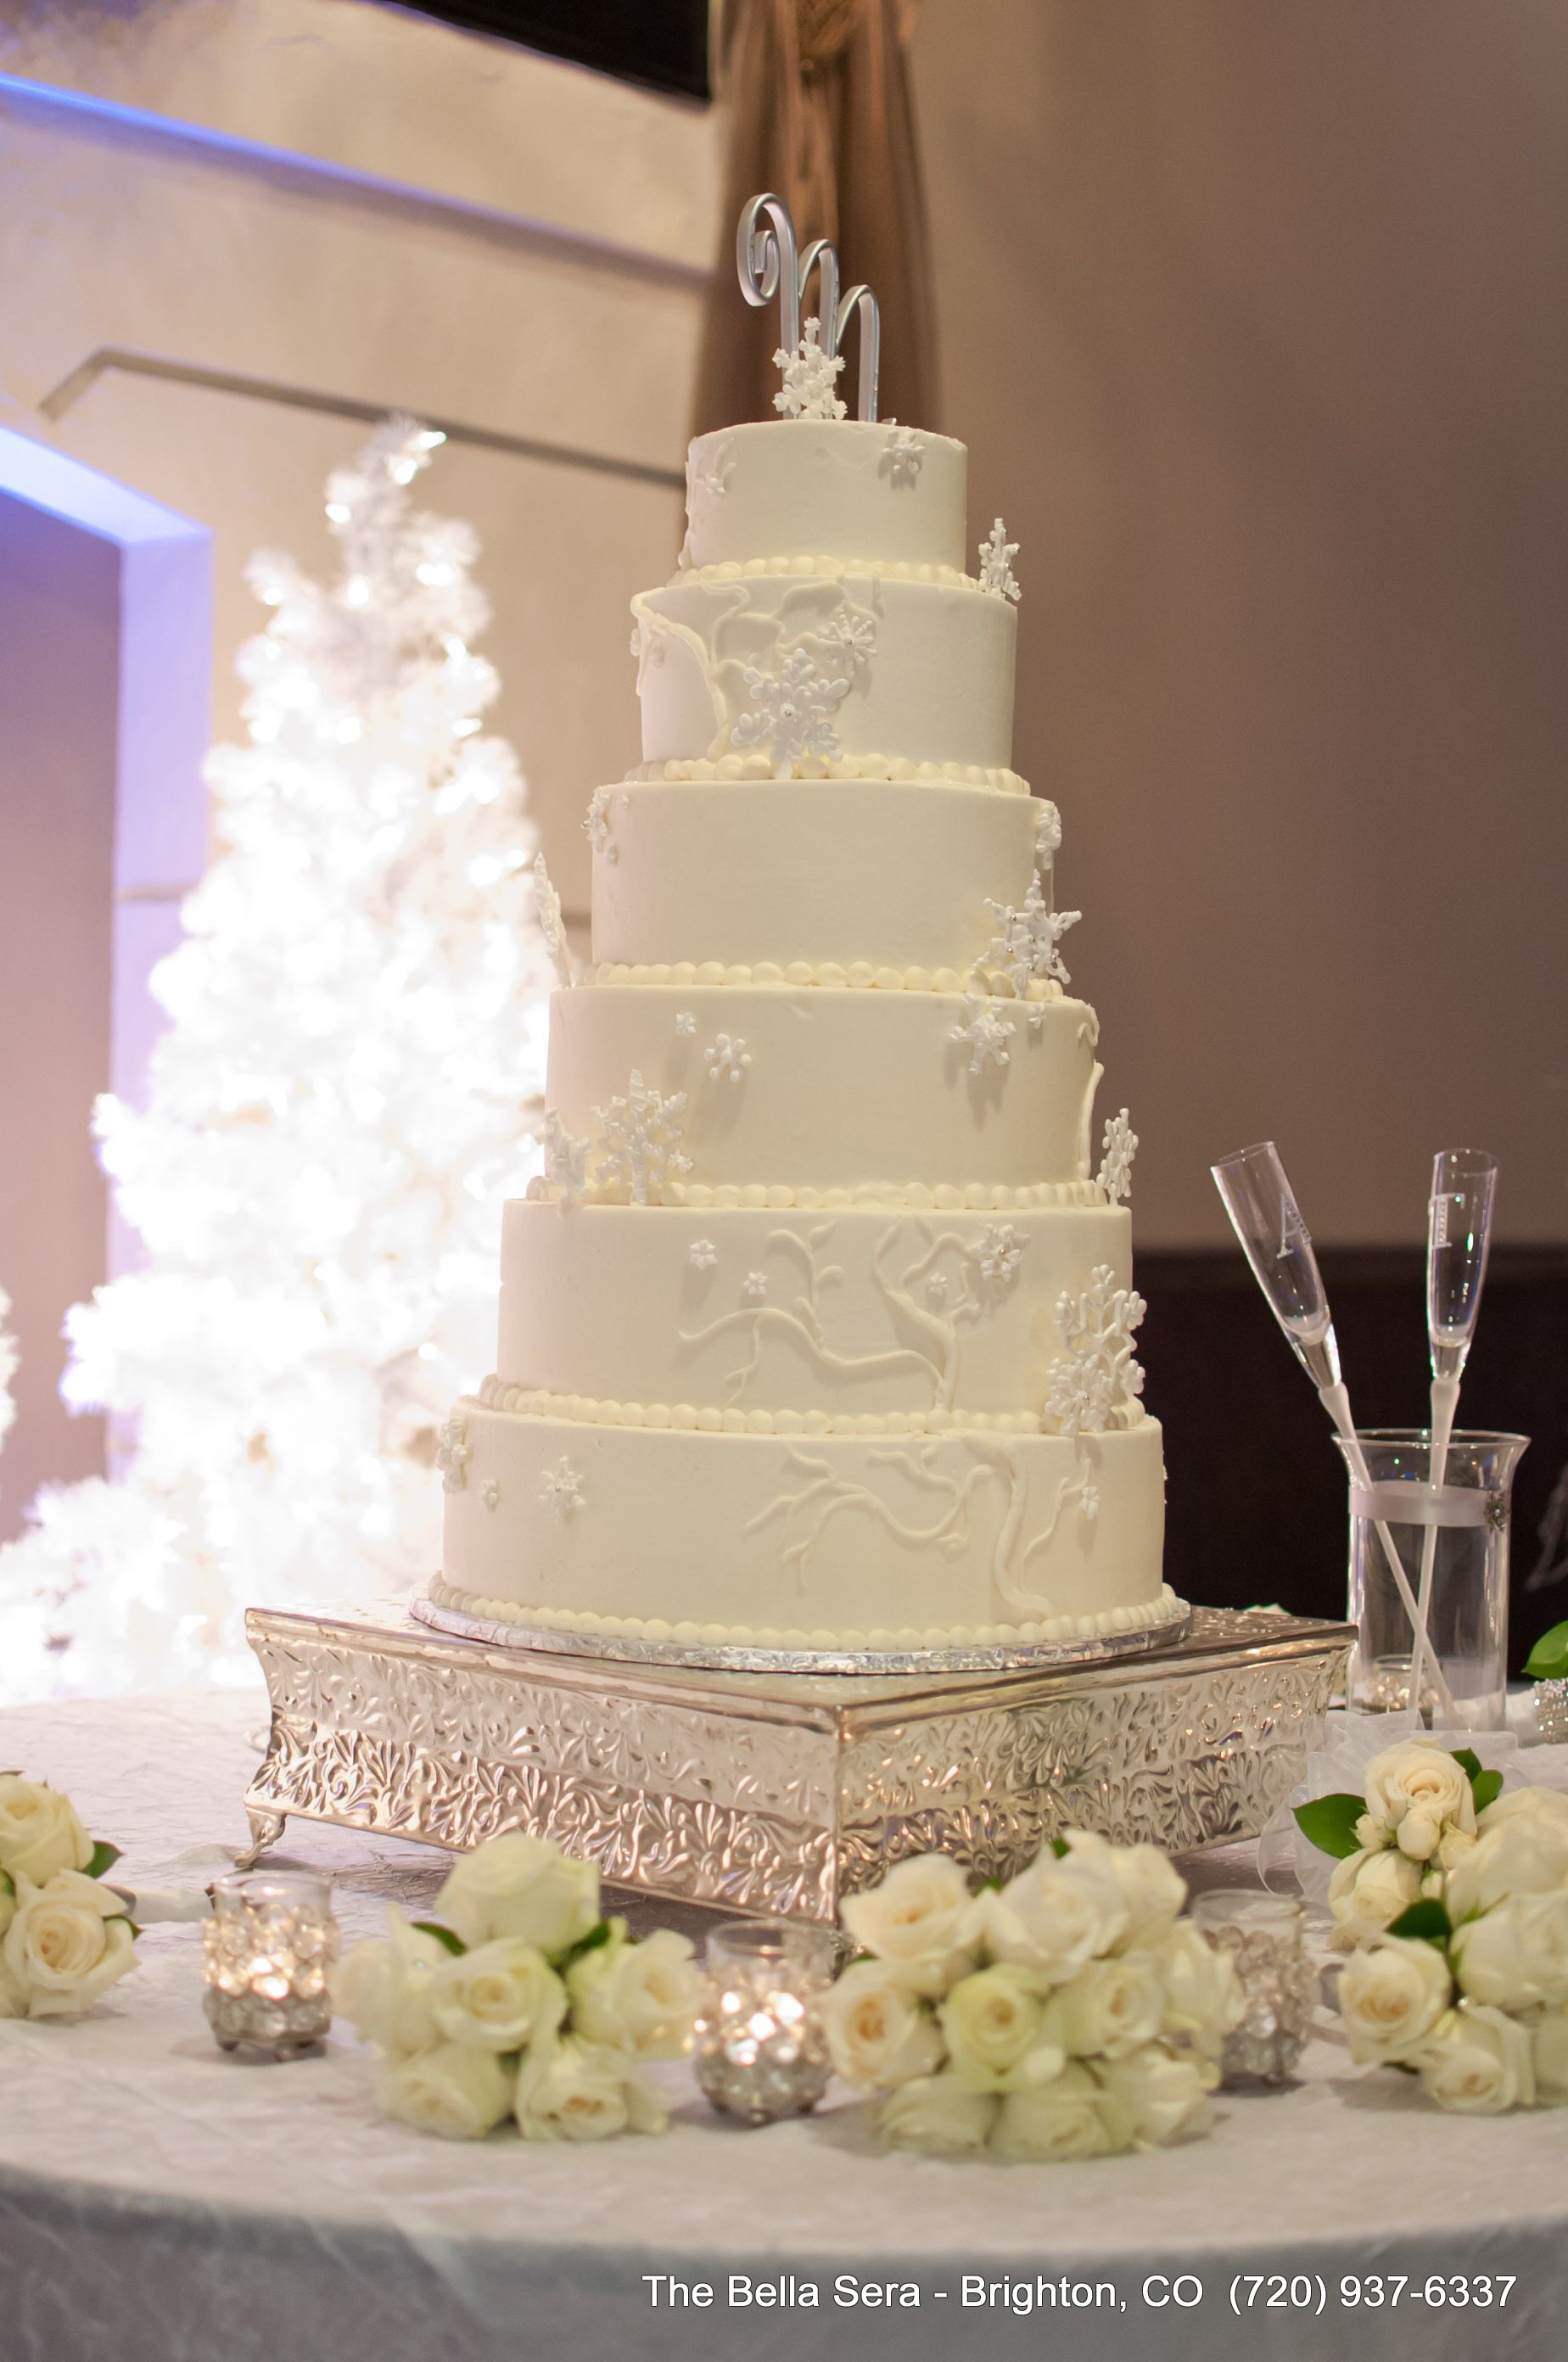 Winter Wonderland Wedding Cakes  Wedding Cake Traditions Bella Sera Denver Wedding Venue